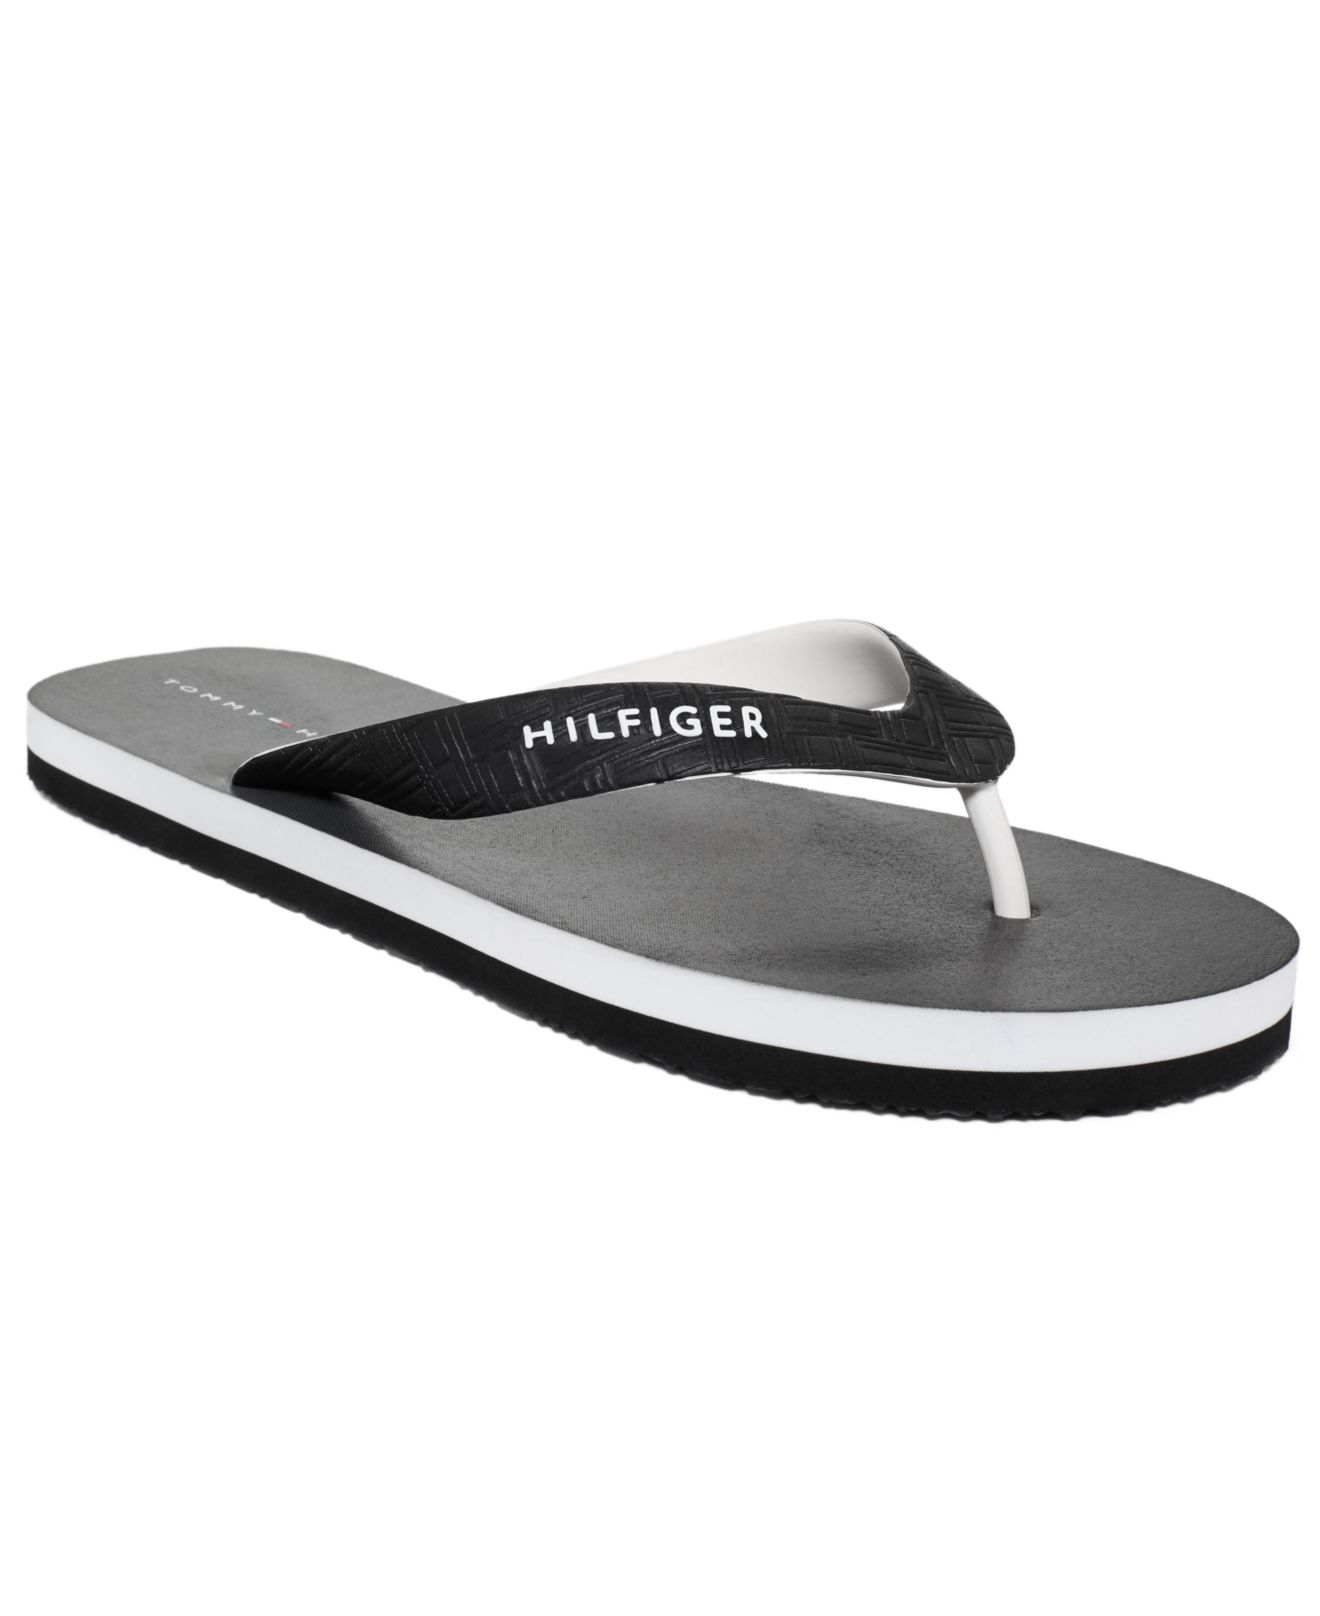 tommy hilfiger sullivan flip flops in black for men lyst. Black Bedroom Furniture Sets. Home Design Ideas